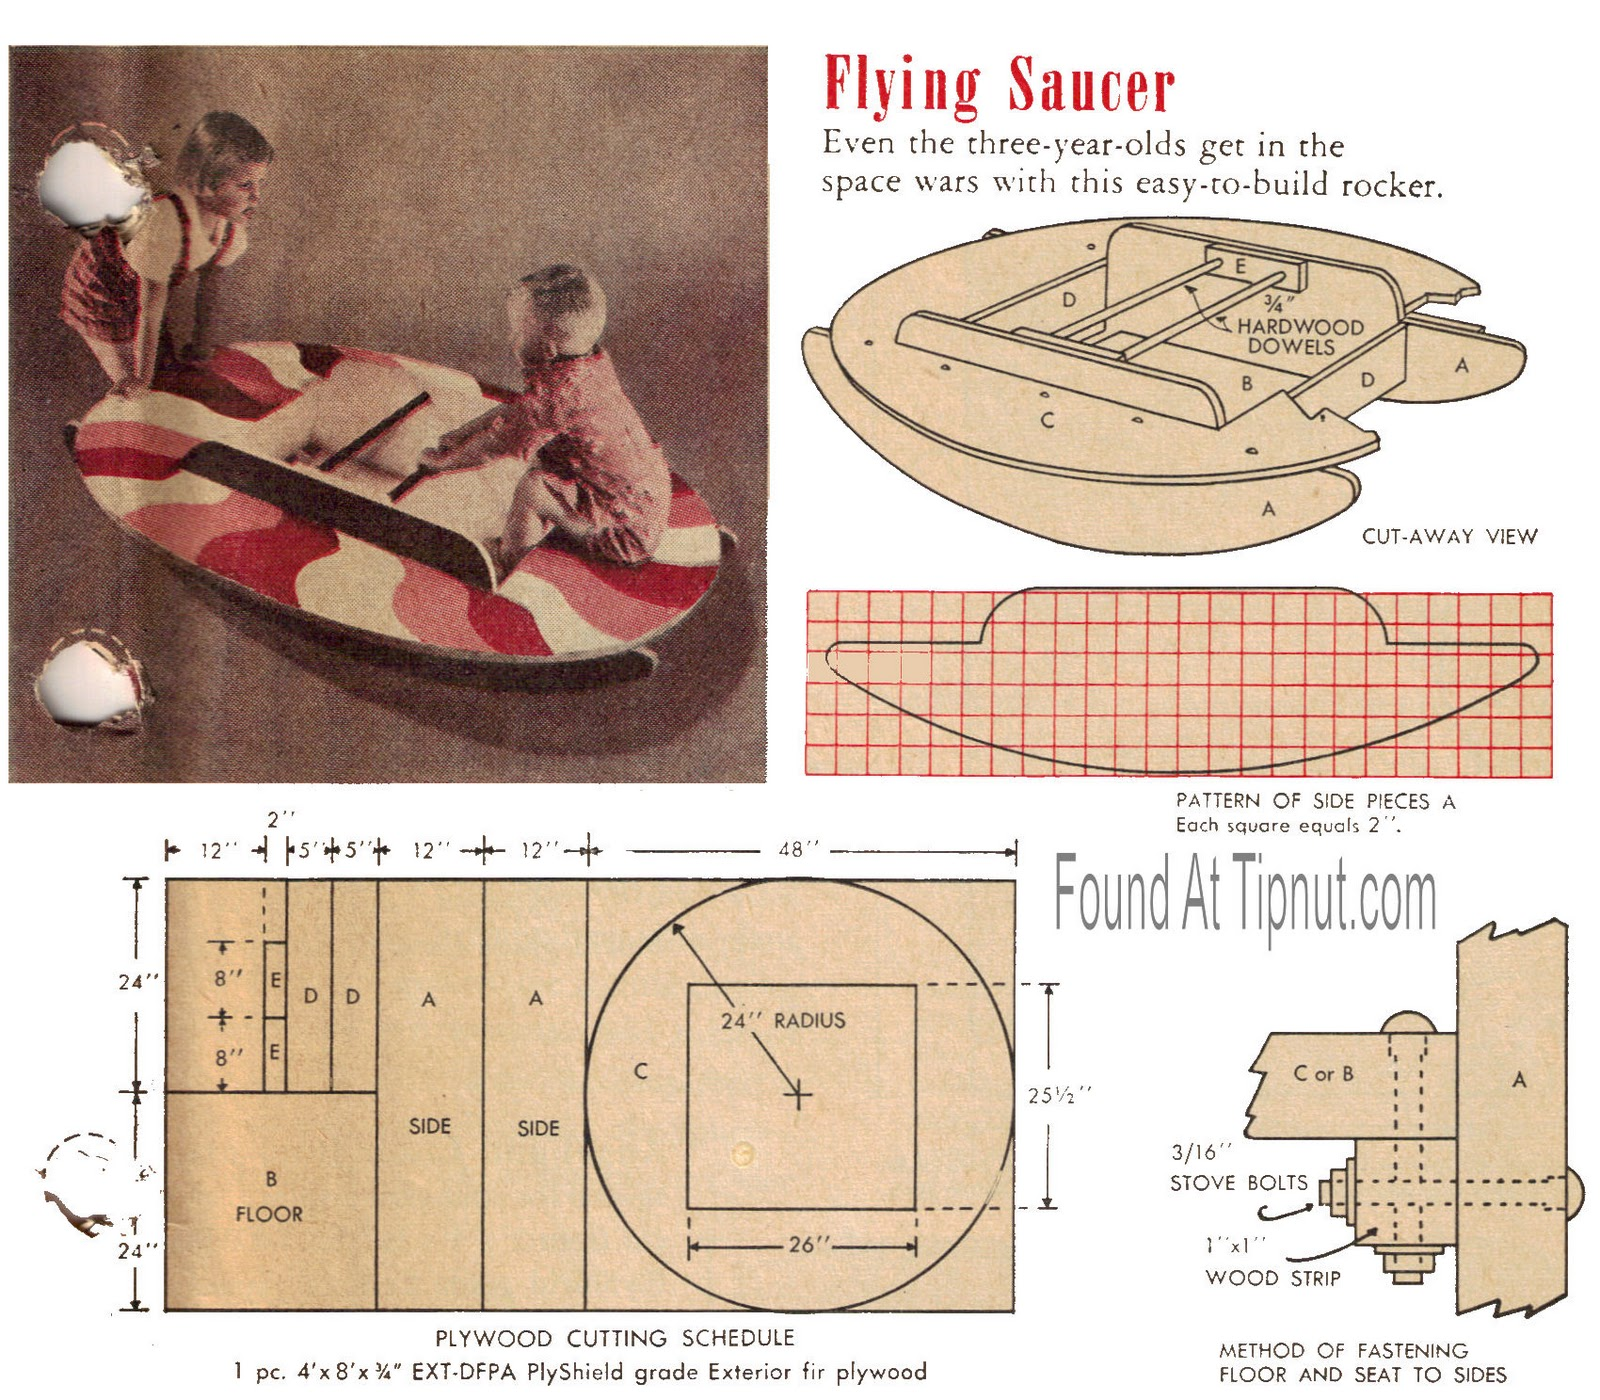 Wood Working Plans , Shed Plans and more: Flying Saucer